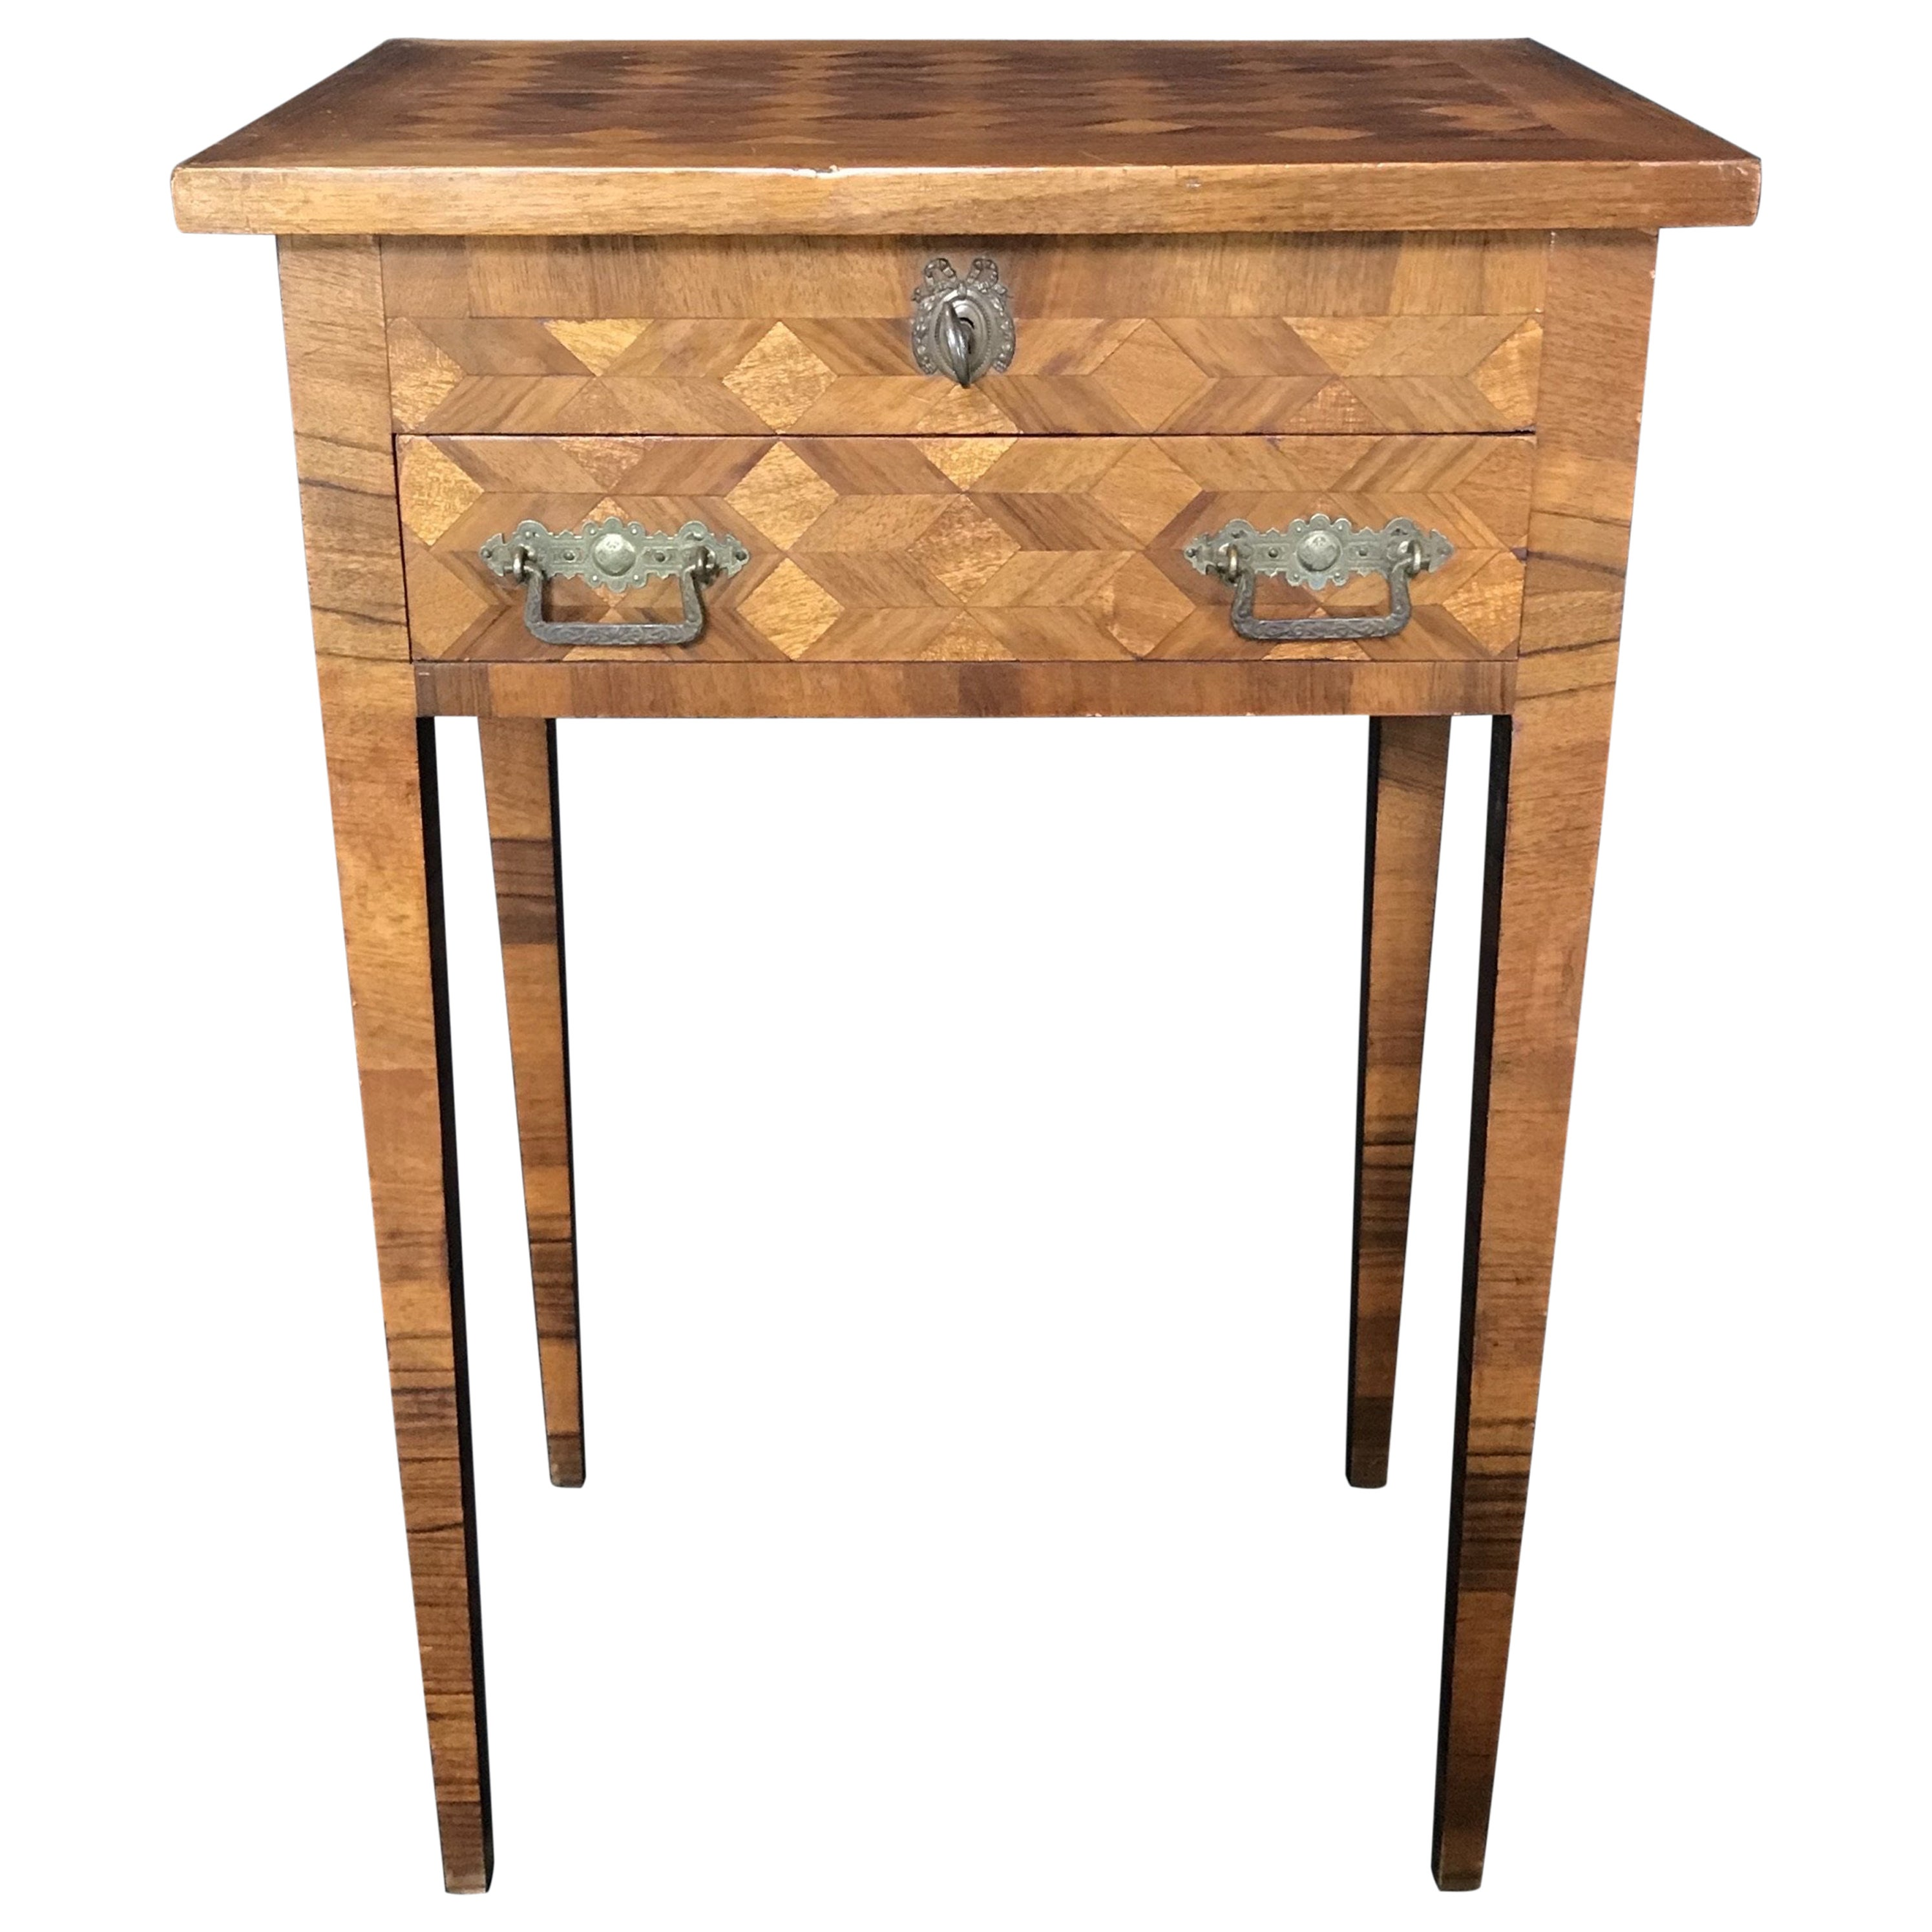 Lovely French Walnut Parquetry Side Table or Nightstand